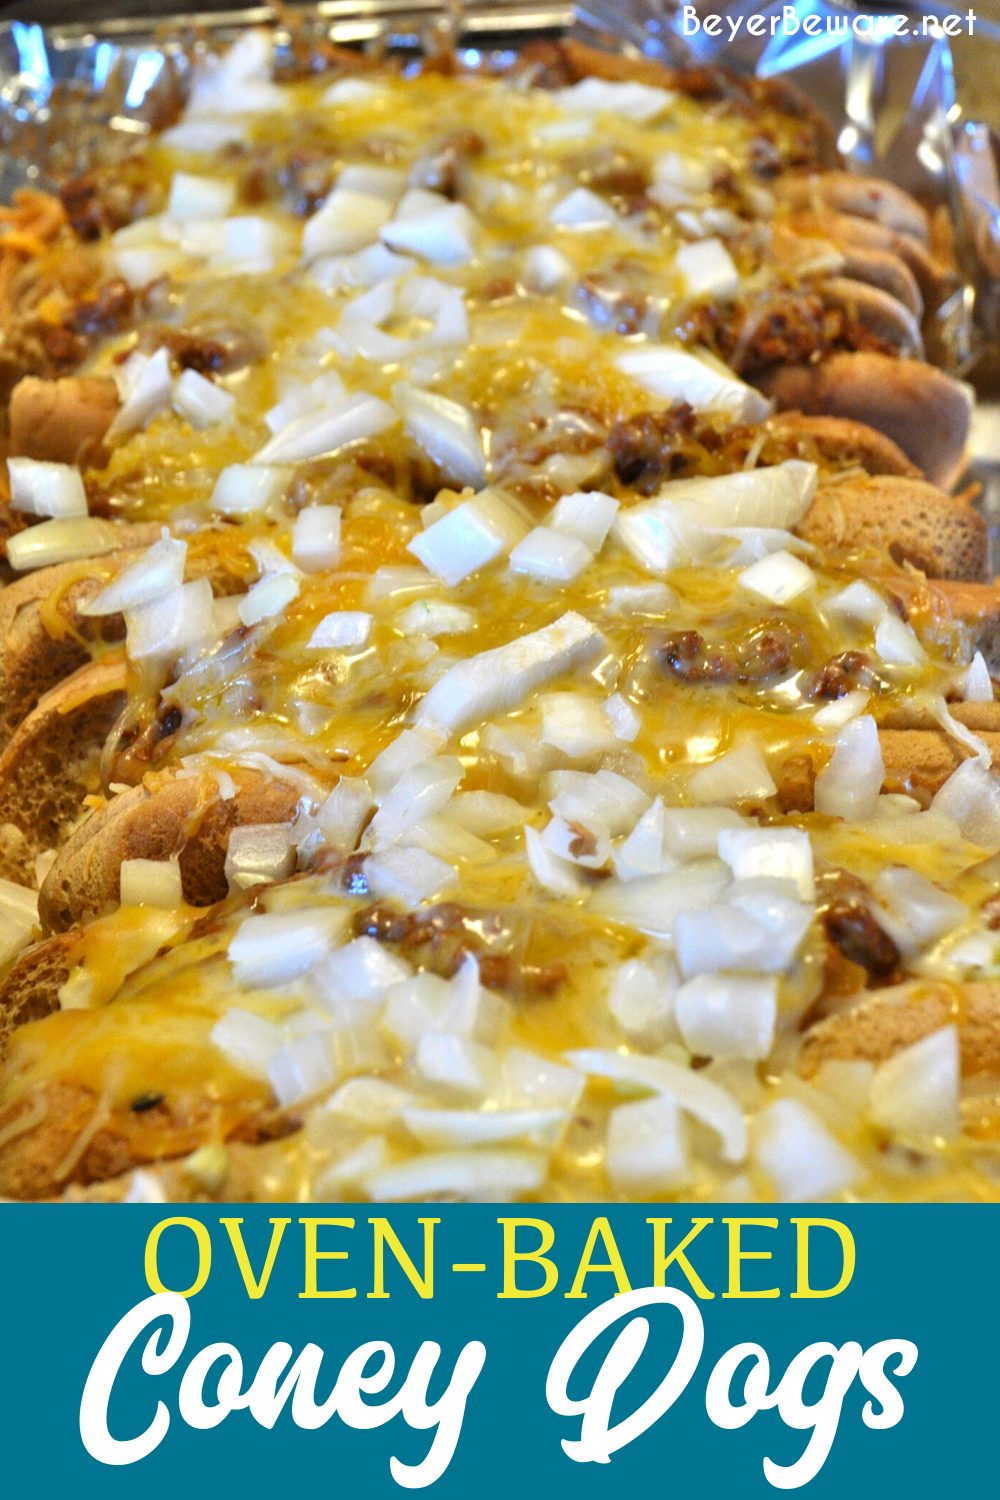 Oven-baked Coney dogs are the best way to use up leftover sloppy joes or chili. Grab some buns, hot dogs, chili, cheese, and onions for amazing coney dogs.